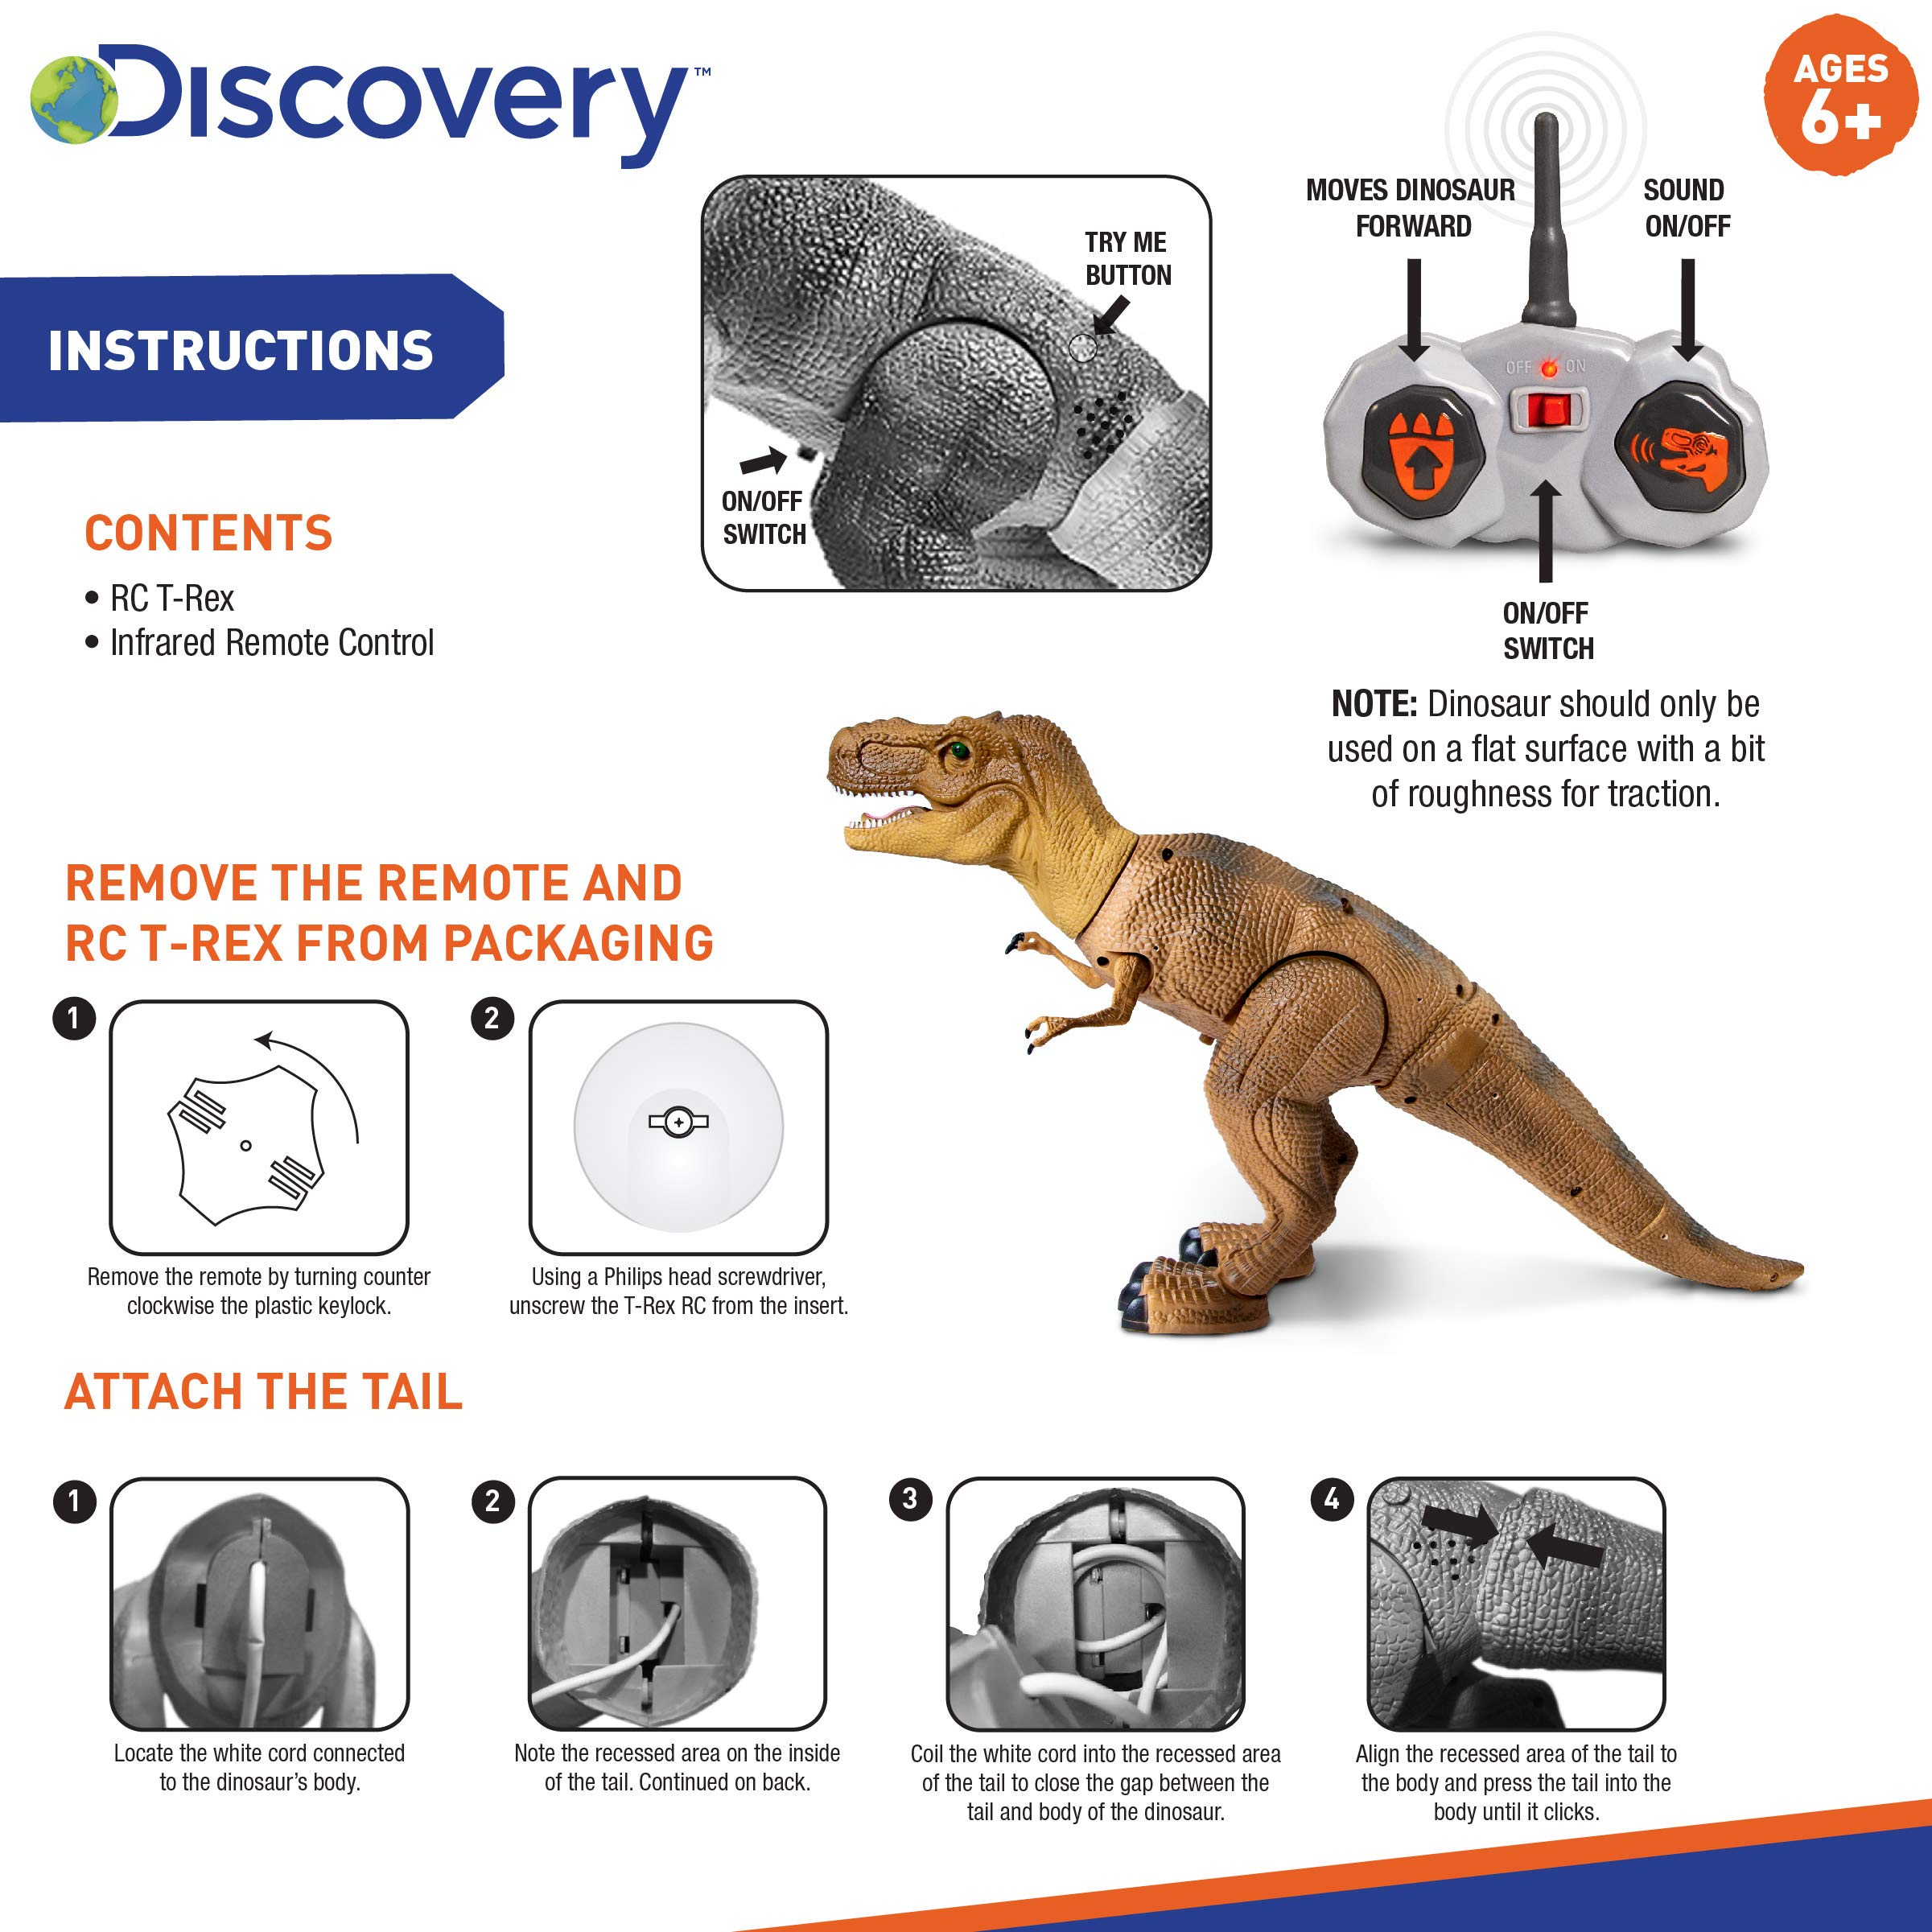 Discovery Kids Remote Control RC T Rex Dinosaur Electronic Toy Action Figure Moving & Walking Robot w/Roaring Sounds & Chomping Mouth, Realistic Plastic Model, Boys & Girls 6 Years Old+ by Discovery Kids (Image #7)